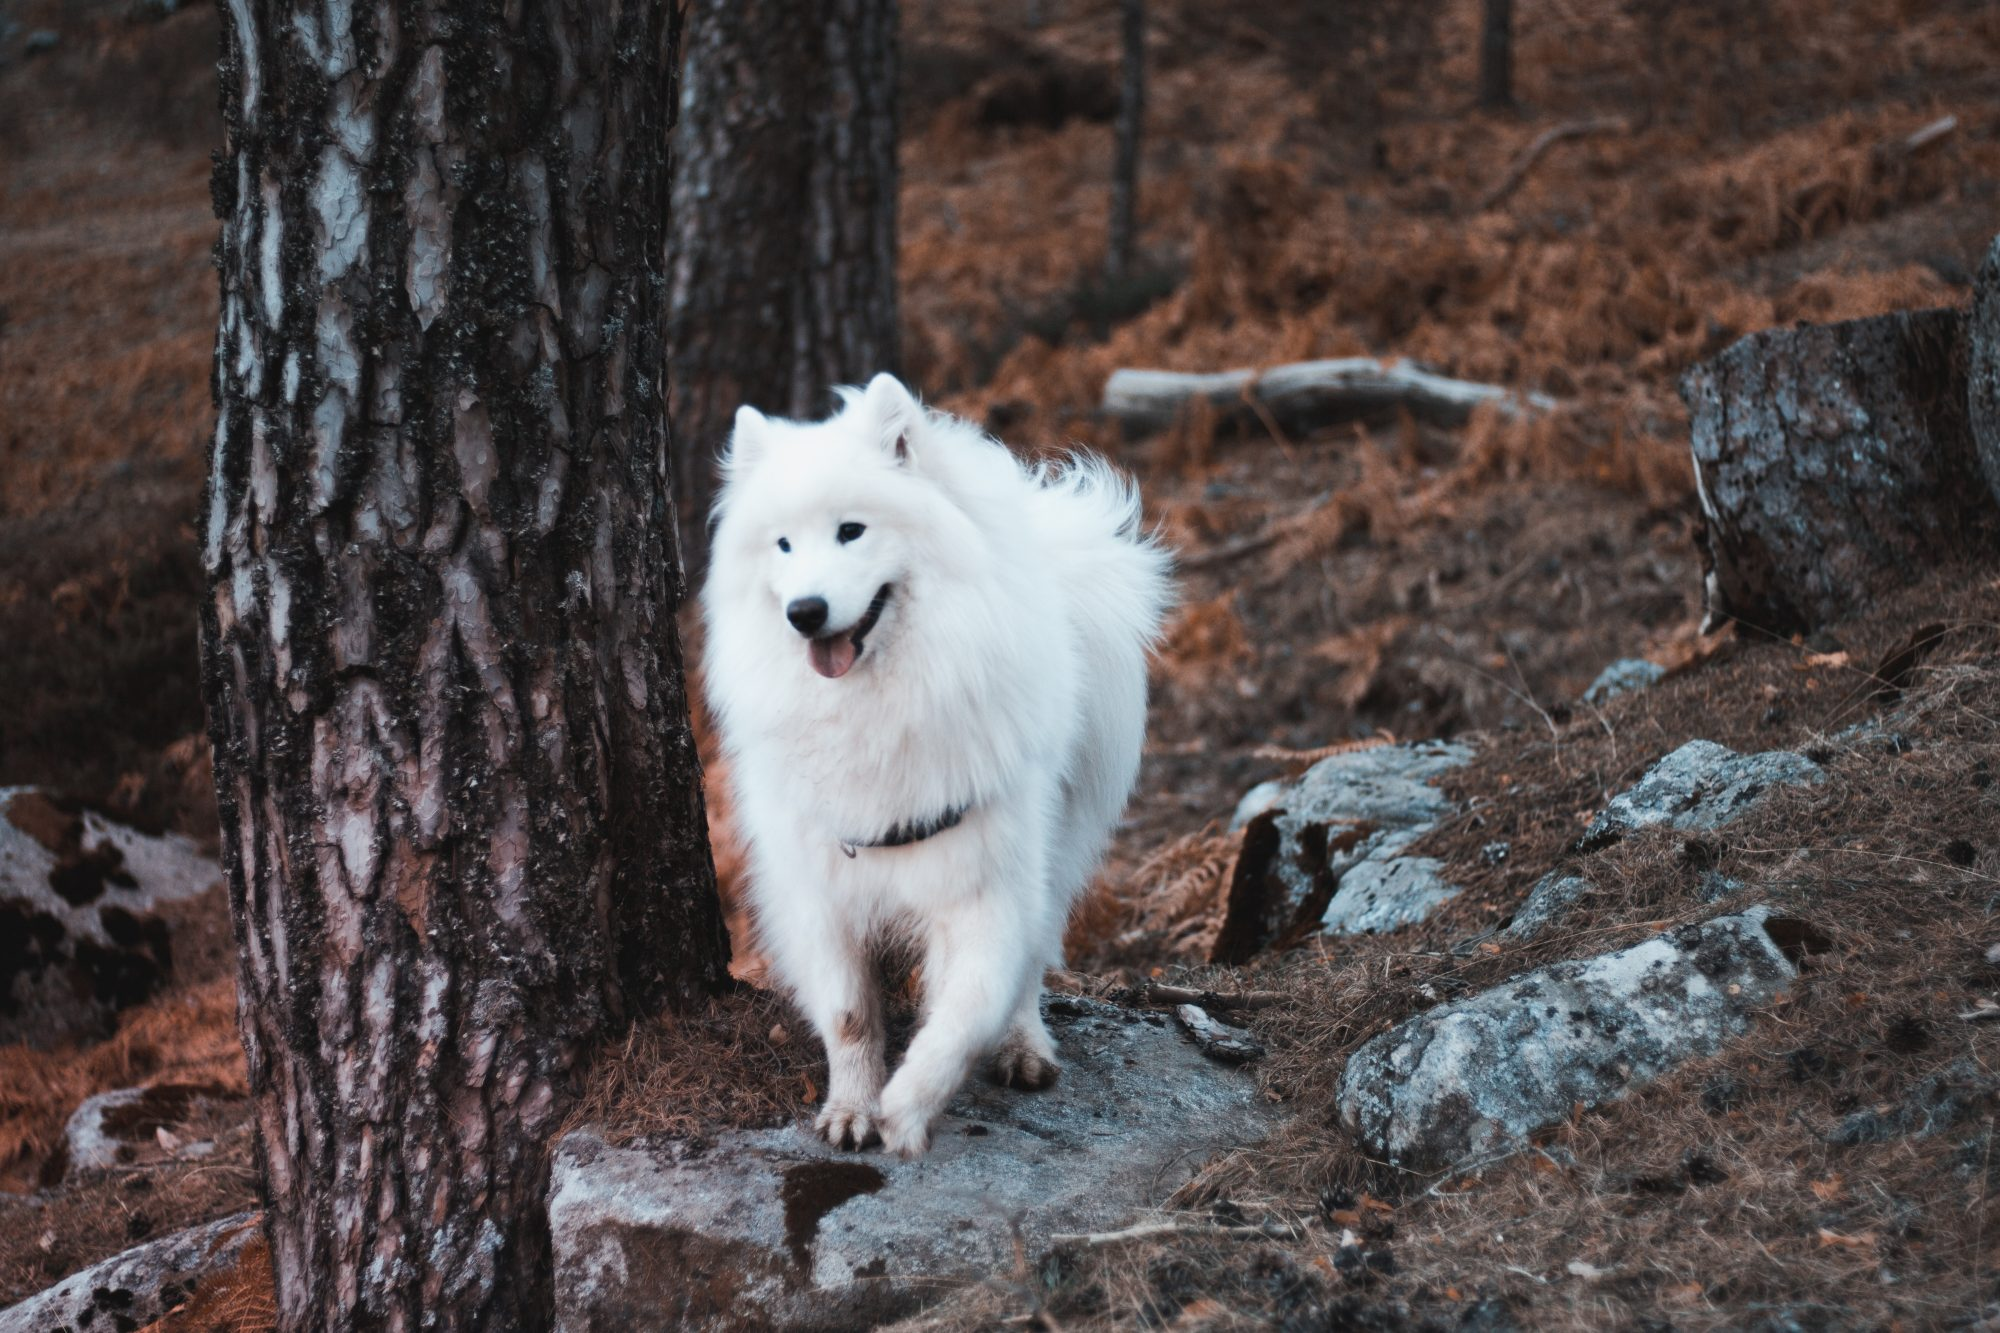 hiking the trails in Bend with a dog